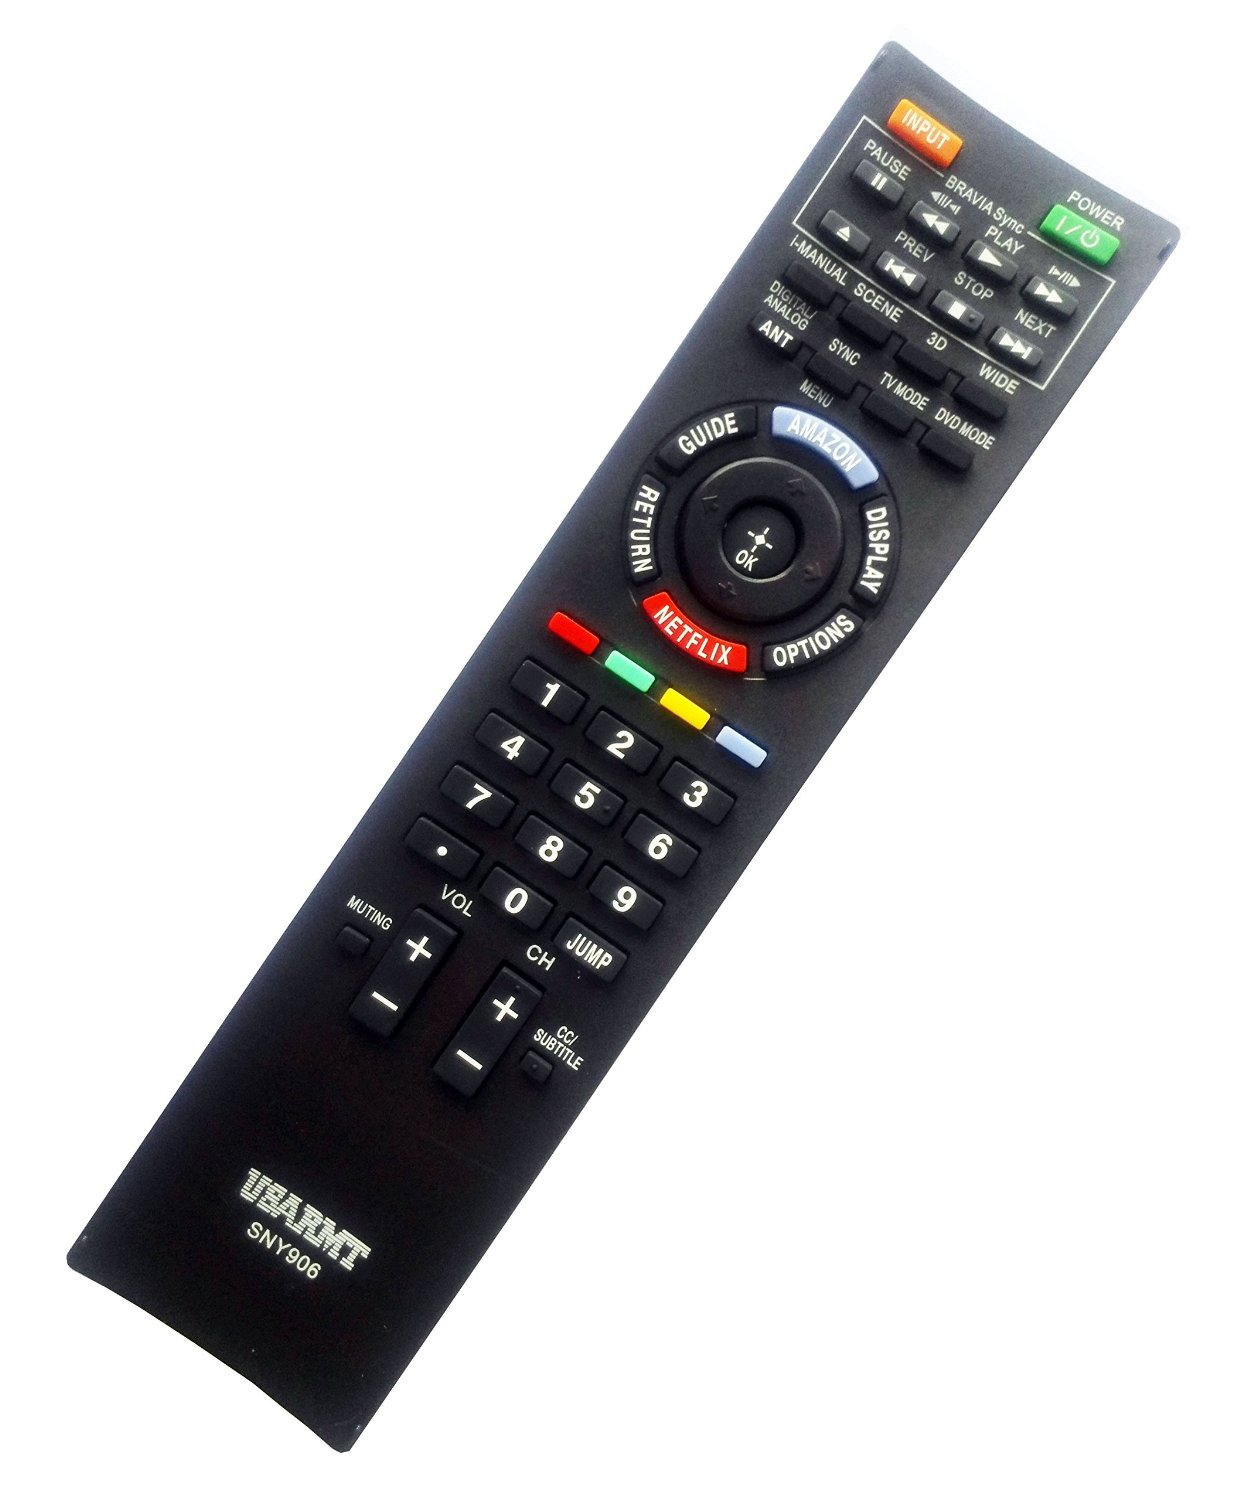 NEW Sony Universal TV&DVD Blu-ray Player Remote Fit for 99% Sony LCD LED TV & DVD Blu-ray Player, replace RM-YD040 RM-YD103 RM-YD094 RM-YD014 RM-YD005 RMT-B119A RMT-B107A. Easy to USE!